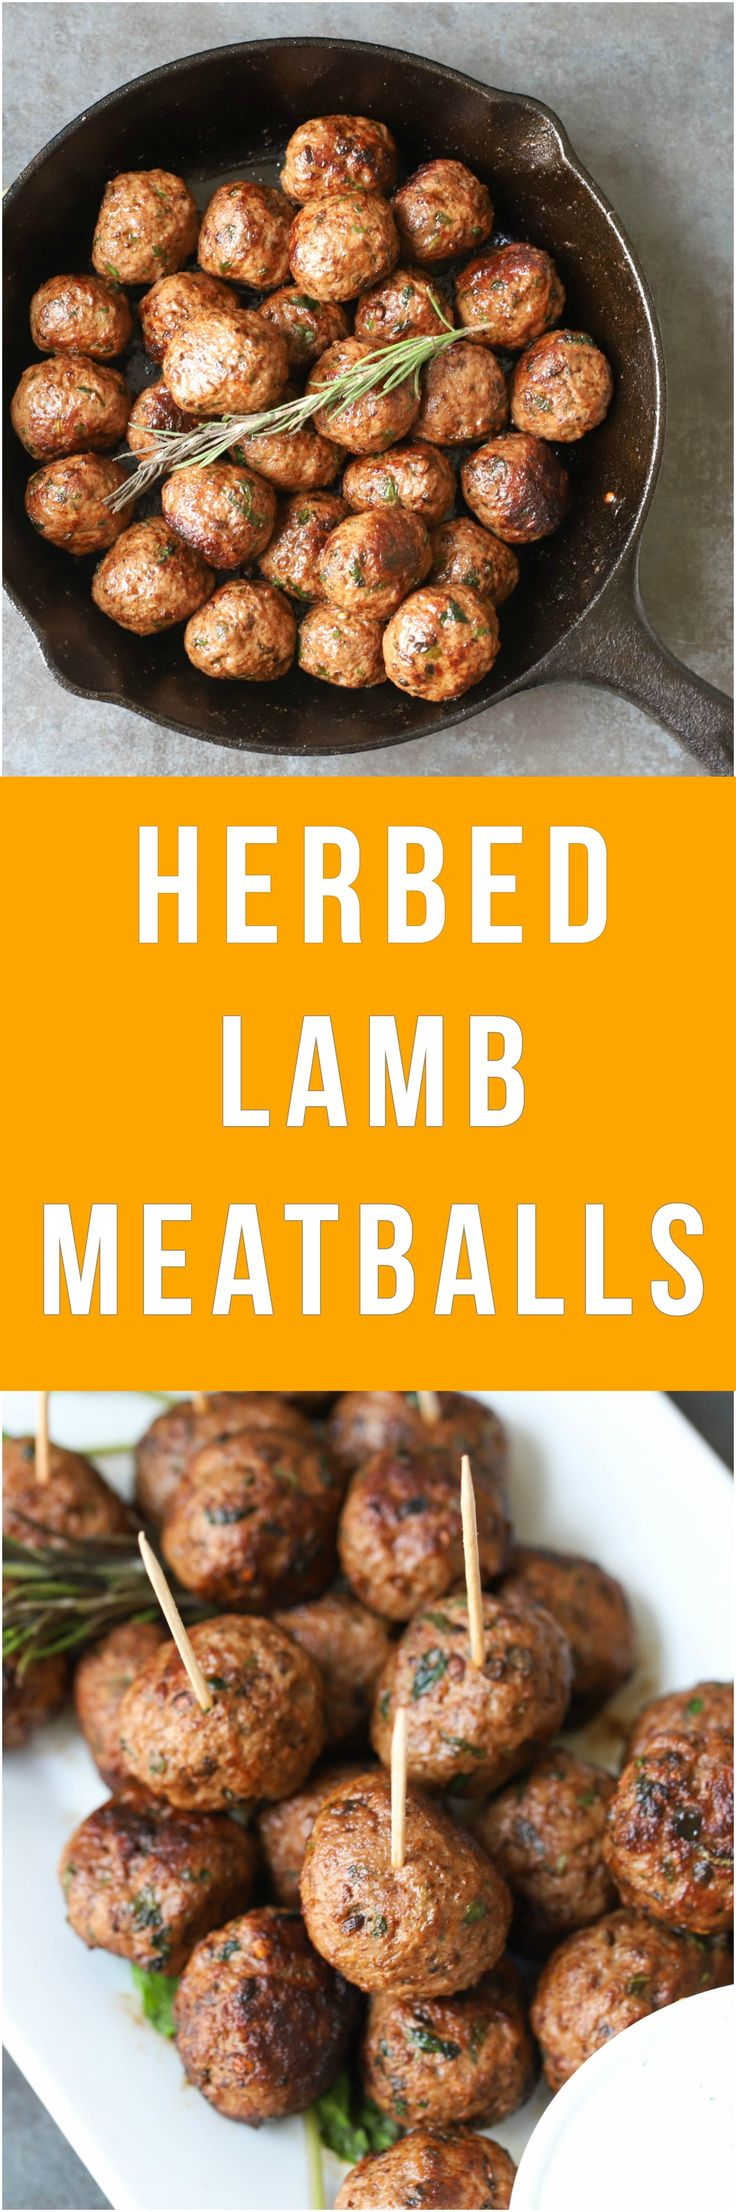 Easy Herbed Lamb Meatballs are packed with flavors from roasted cumin and freshly chopped herbs and are quick to make. They are great for game day parties or hosting a large crowd. These meatballs are naturally gluten-free, paleo, and whole - 30 approved.   #paleo #gamedayfood #whole30approved